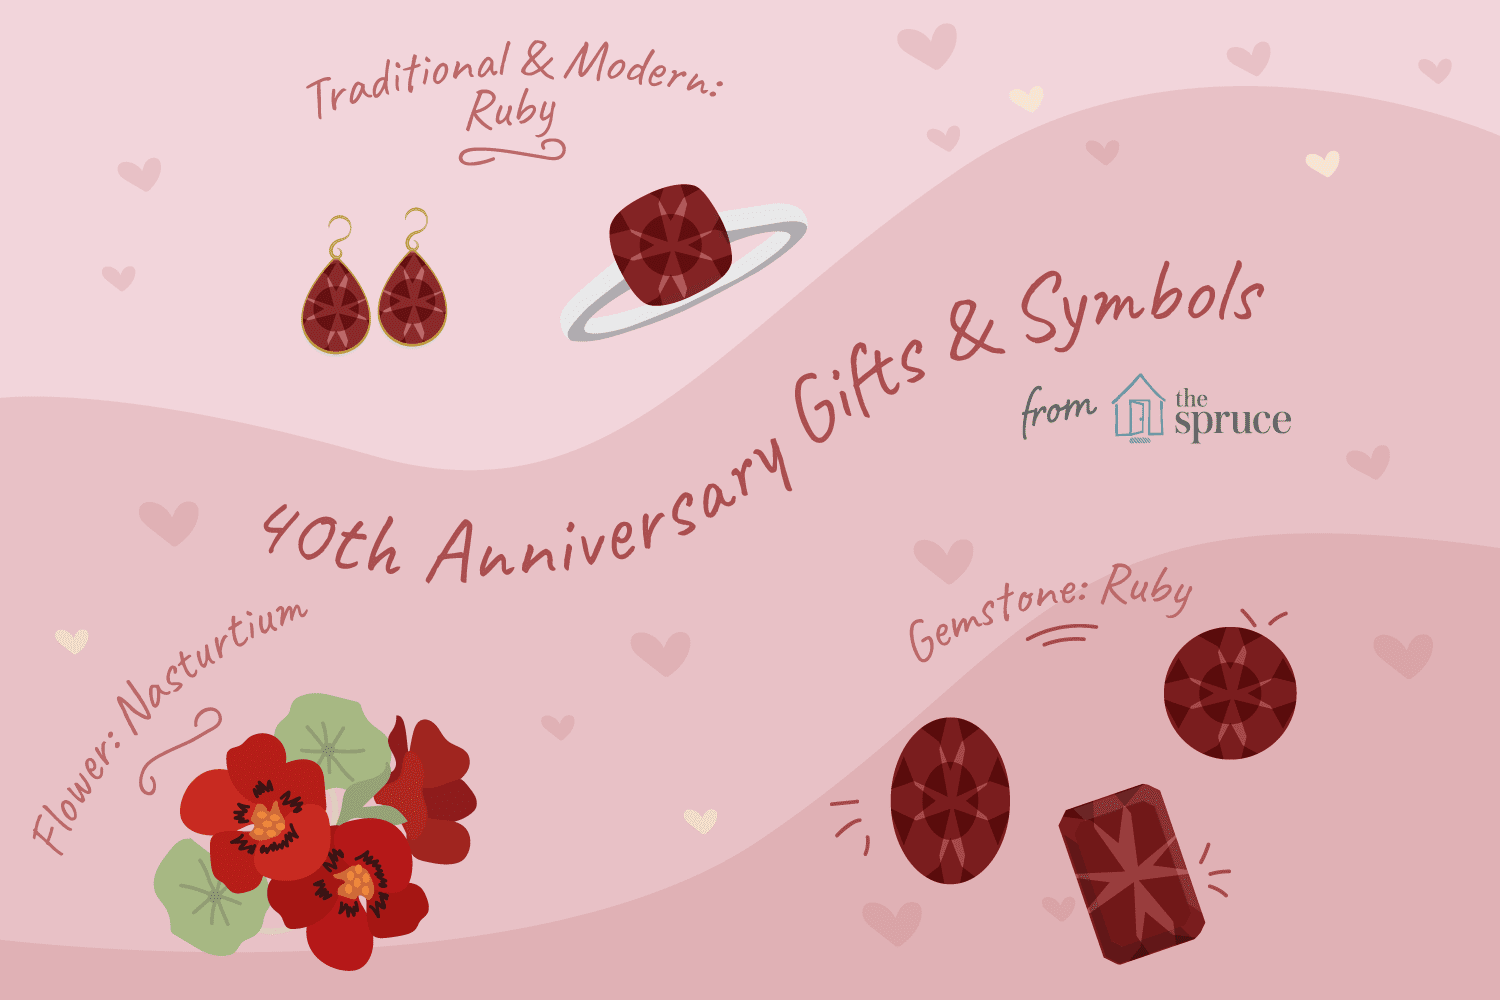 40th Anniversary Celebration Suggestions And Ideas